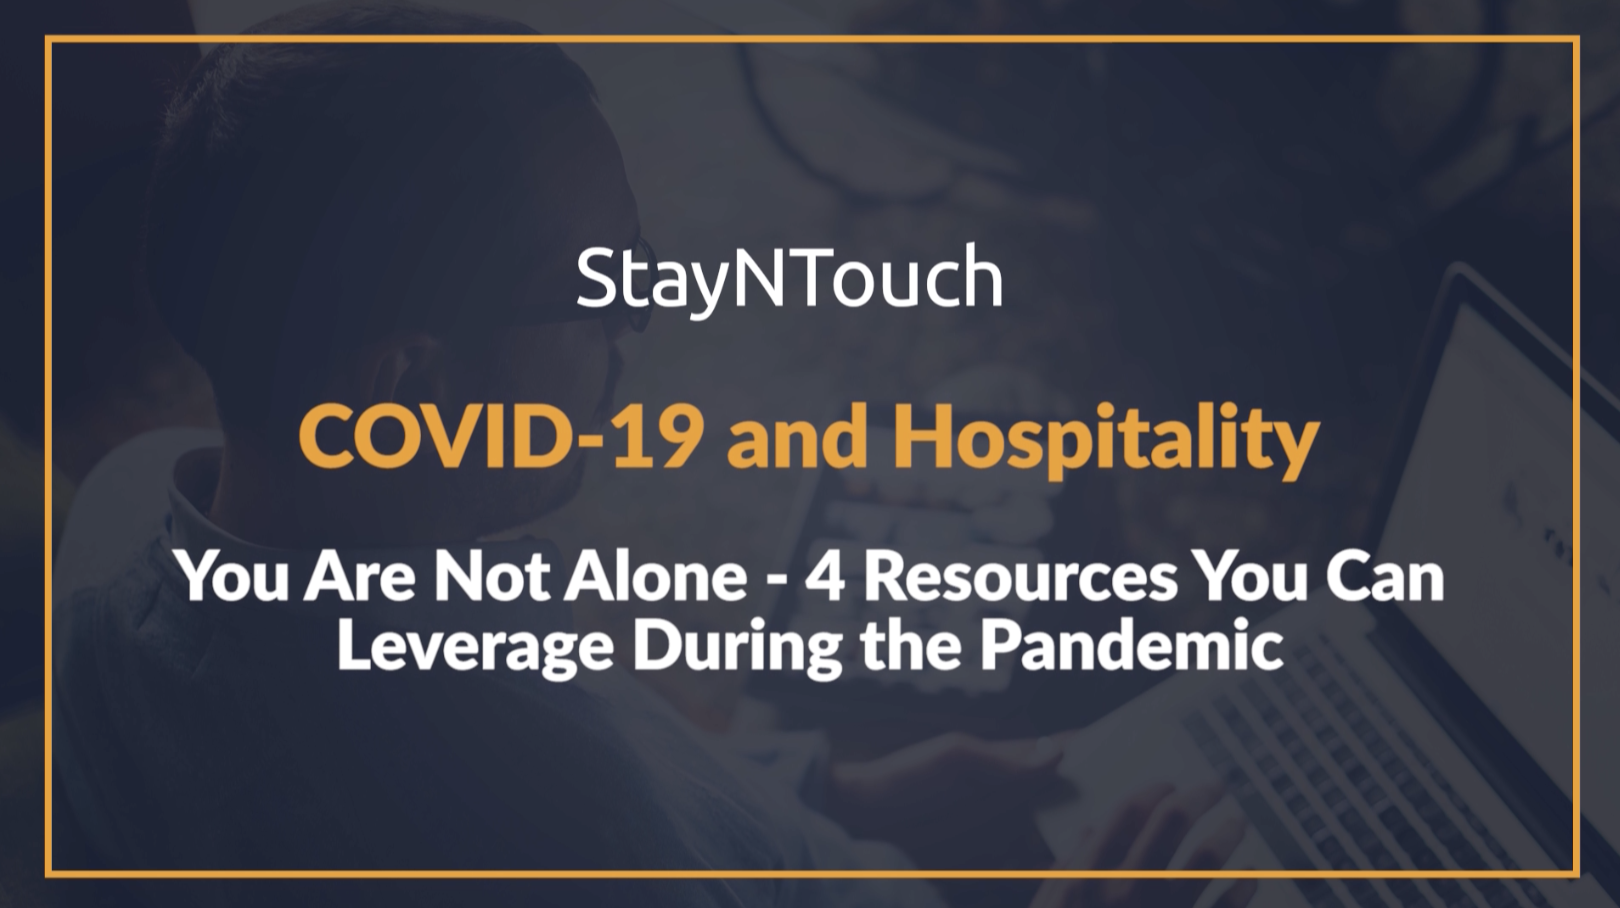 StayNTouch COVID-19 and Hospitality: 4 Resources to Leverage During the Pandemic